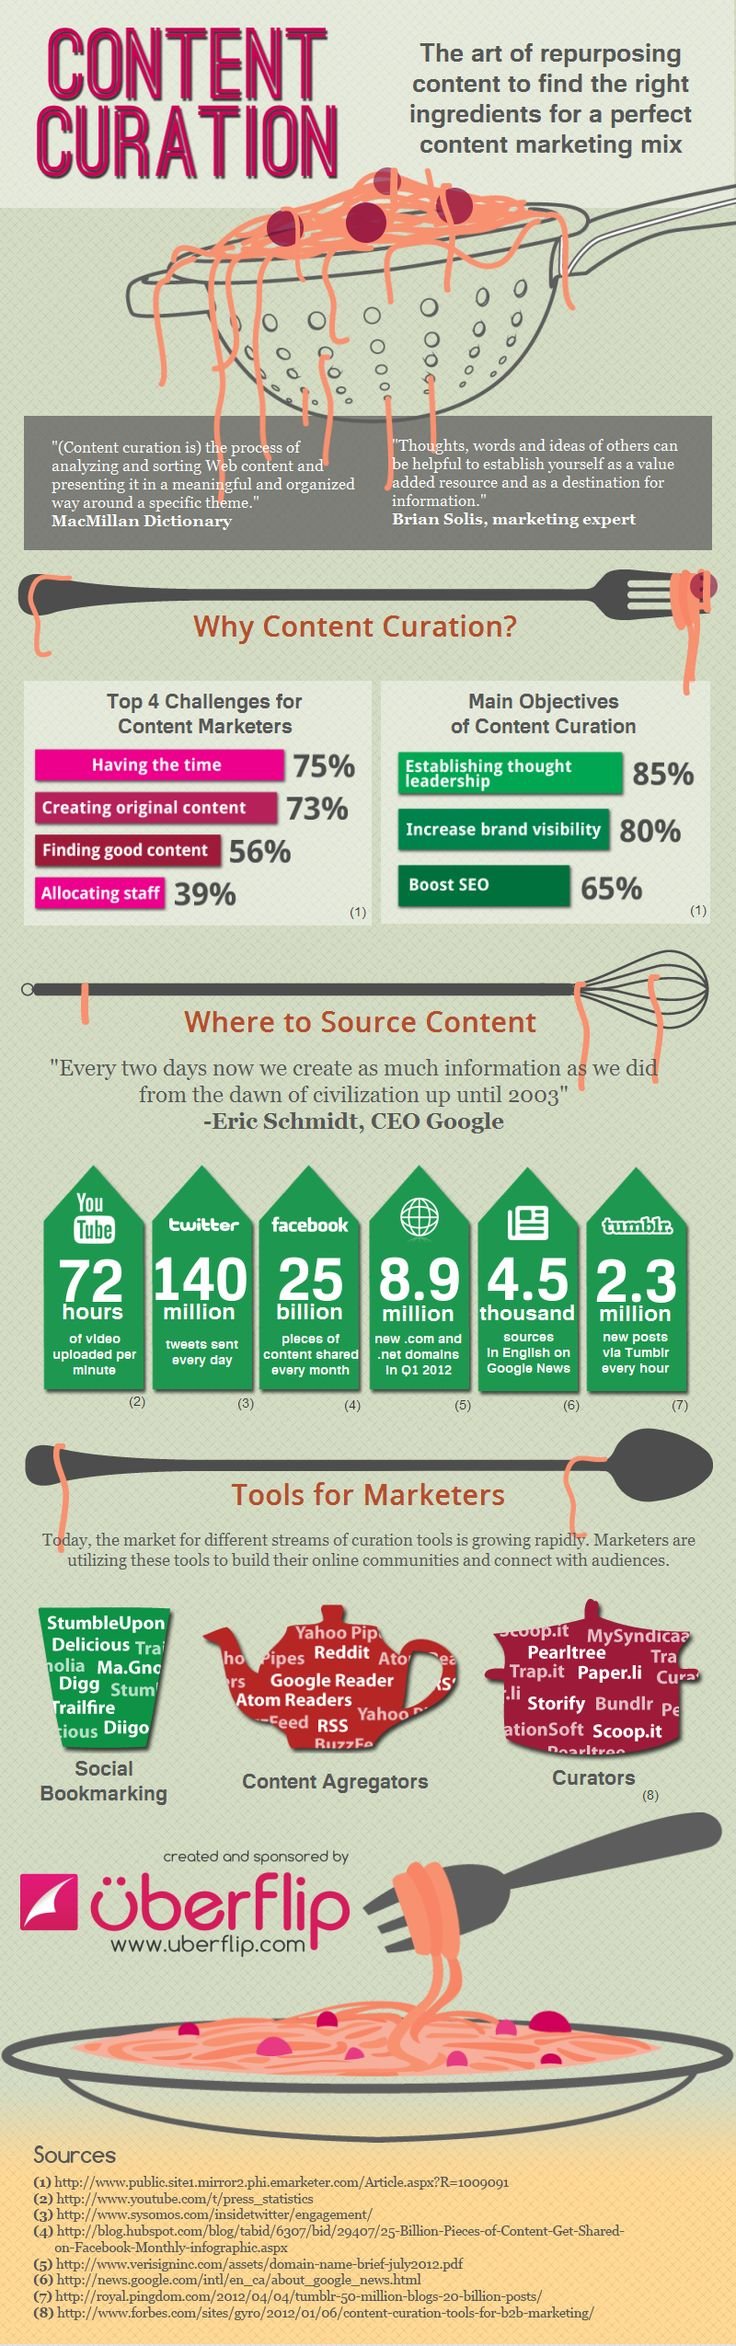 Pin by Candidwriter.com on Content Marketing Infographics Ideas And Tips | Social media content, Social media marketing, Content marketing strategy